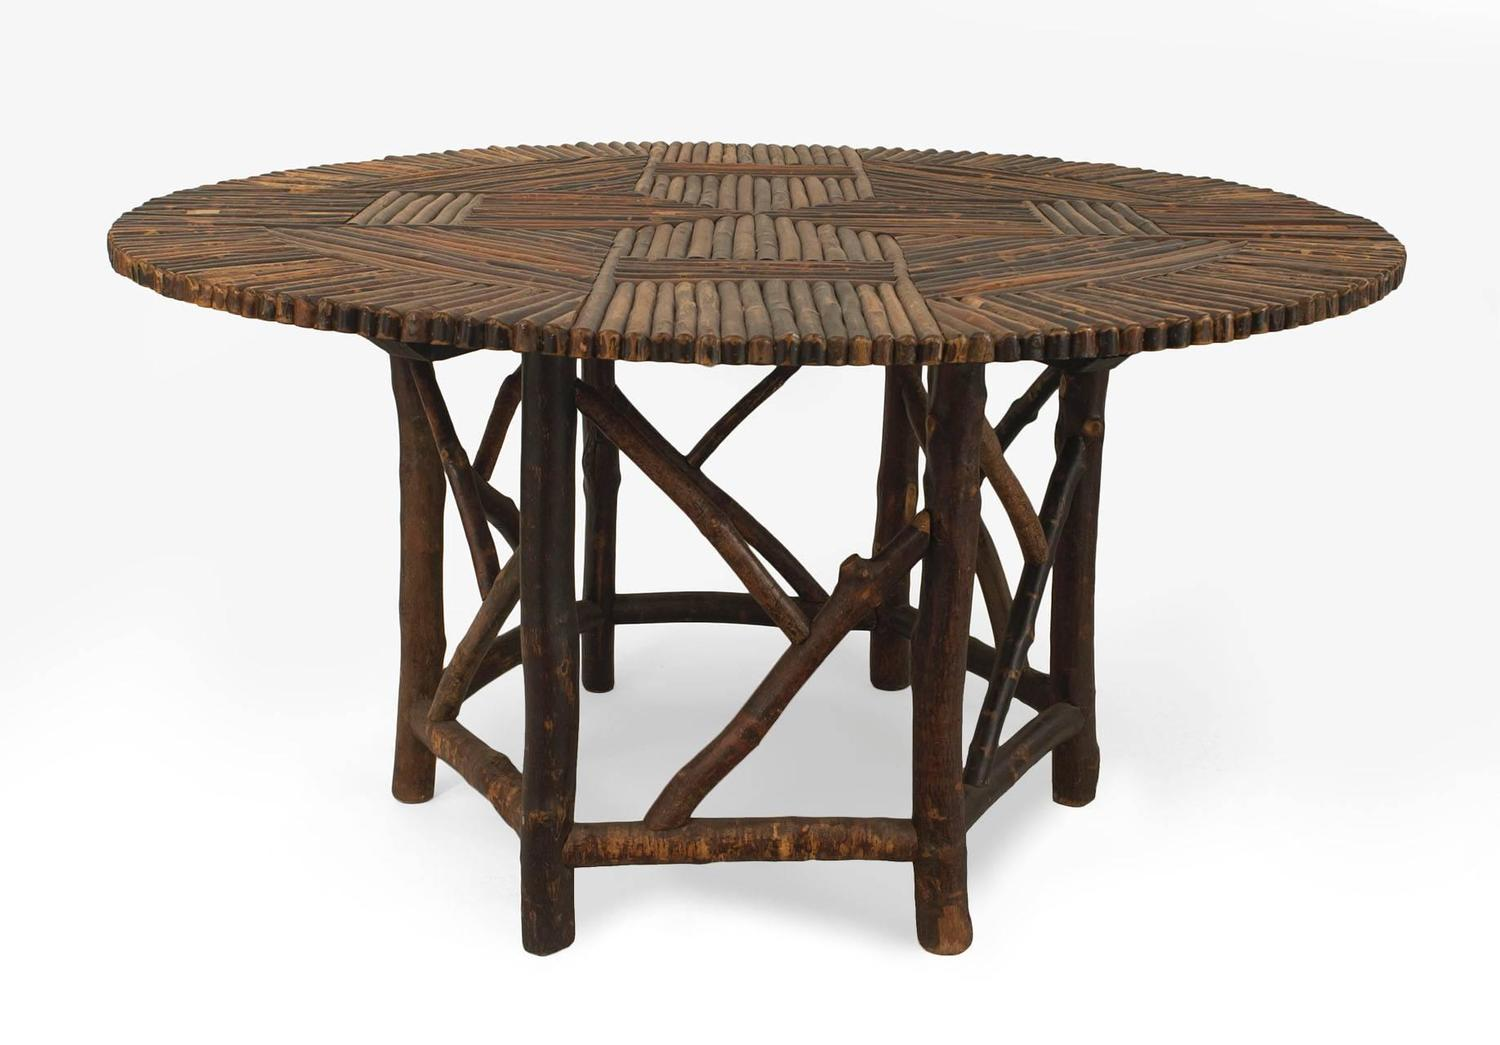 American adirondack style round twig dining table at 1stdibs for Stylish round dining table